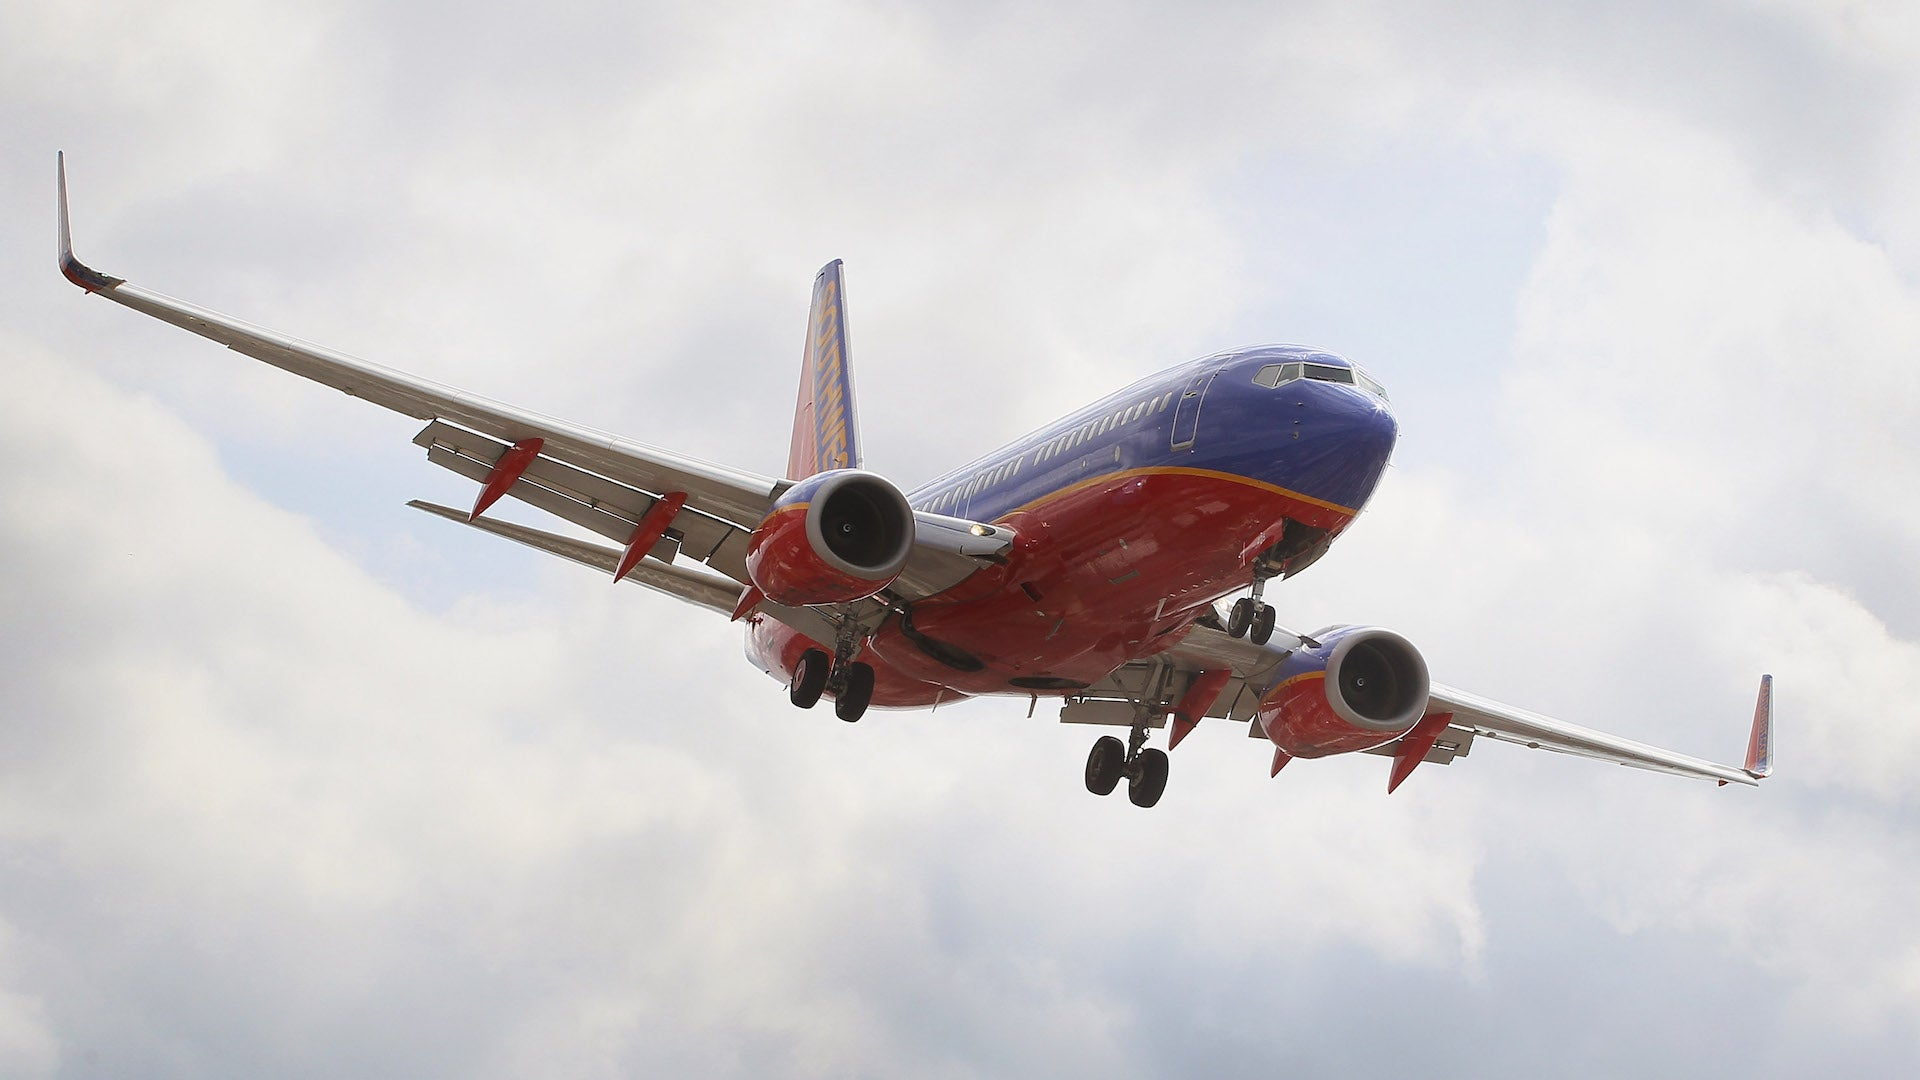 A Southwest Airlines 737-300 plane from 2011. The flight interrupted by a disruptive passenger trying to open the emergency exit occurred on a 737-800. & Passenger Claiming Government Experimented On Her Tries To Open ...